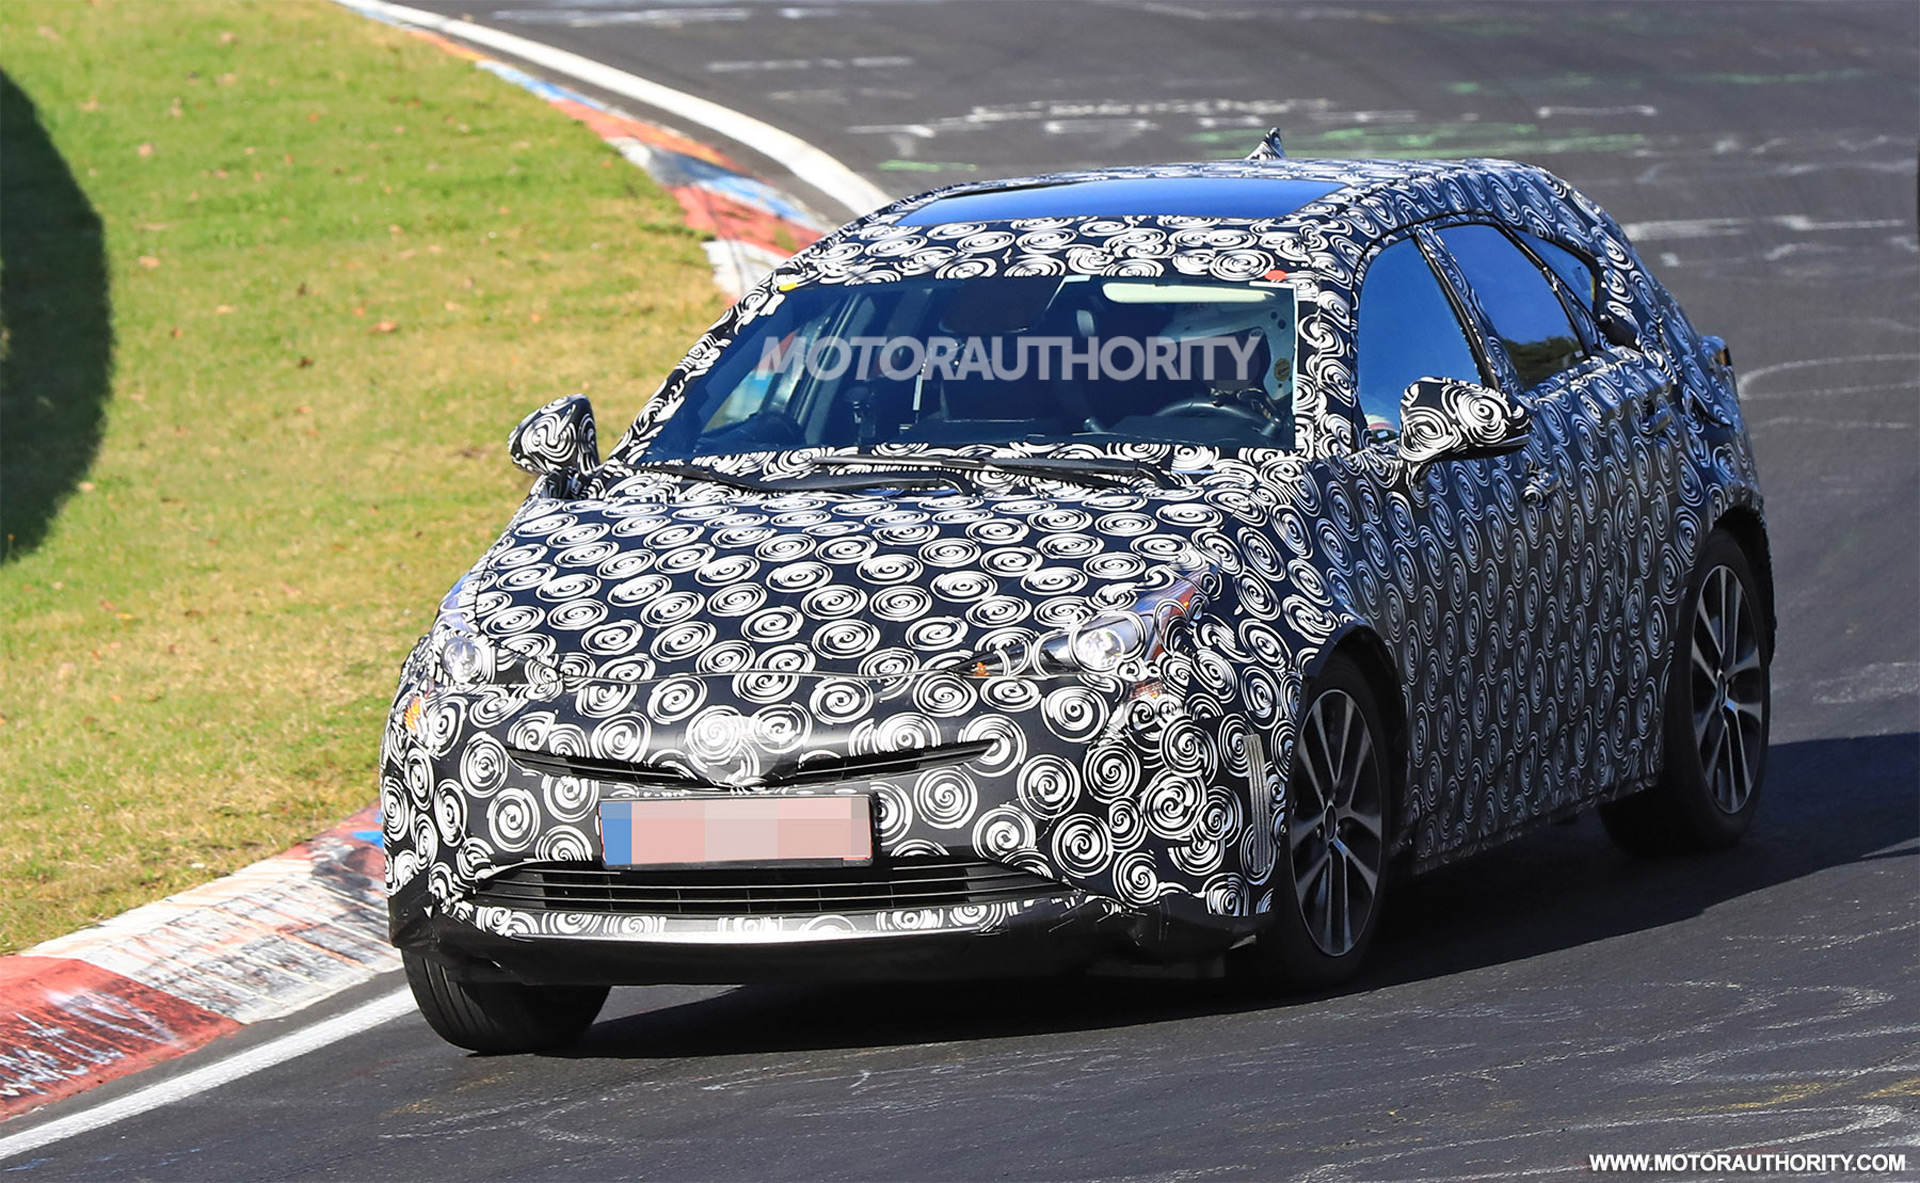 39 All New Spy Shots Toyota Prius Wallpaper